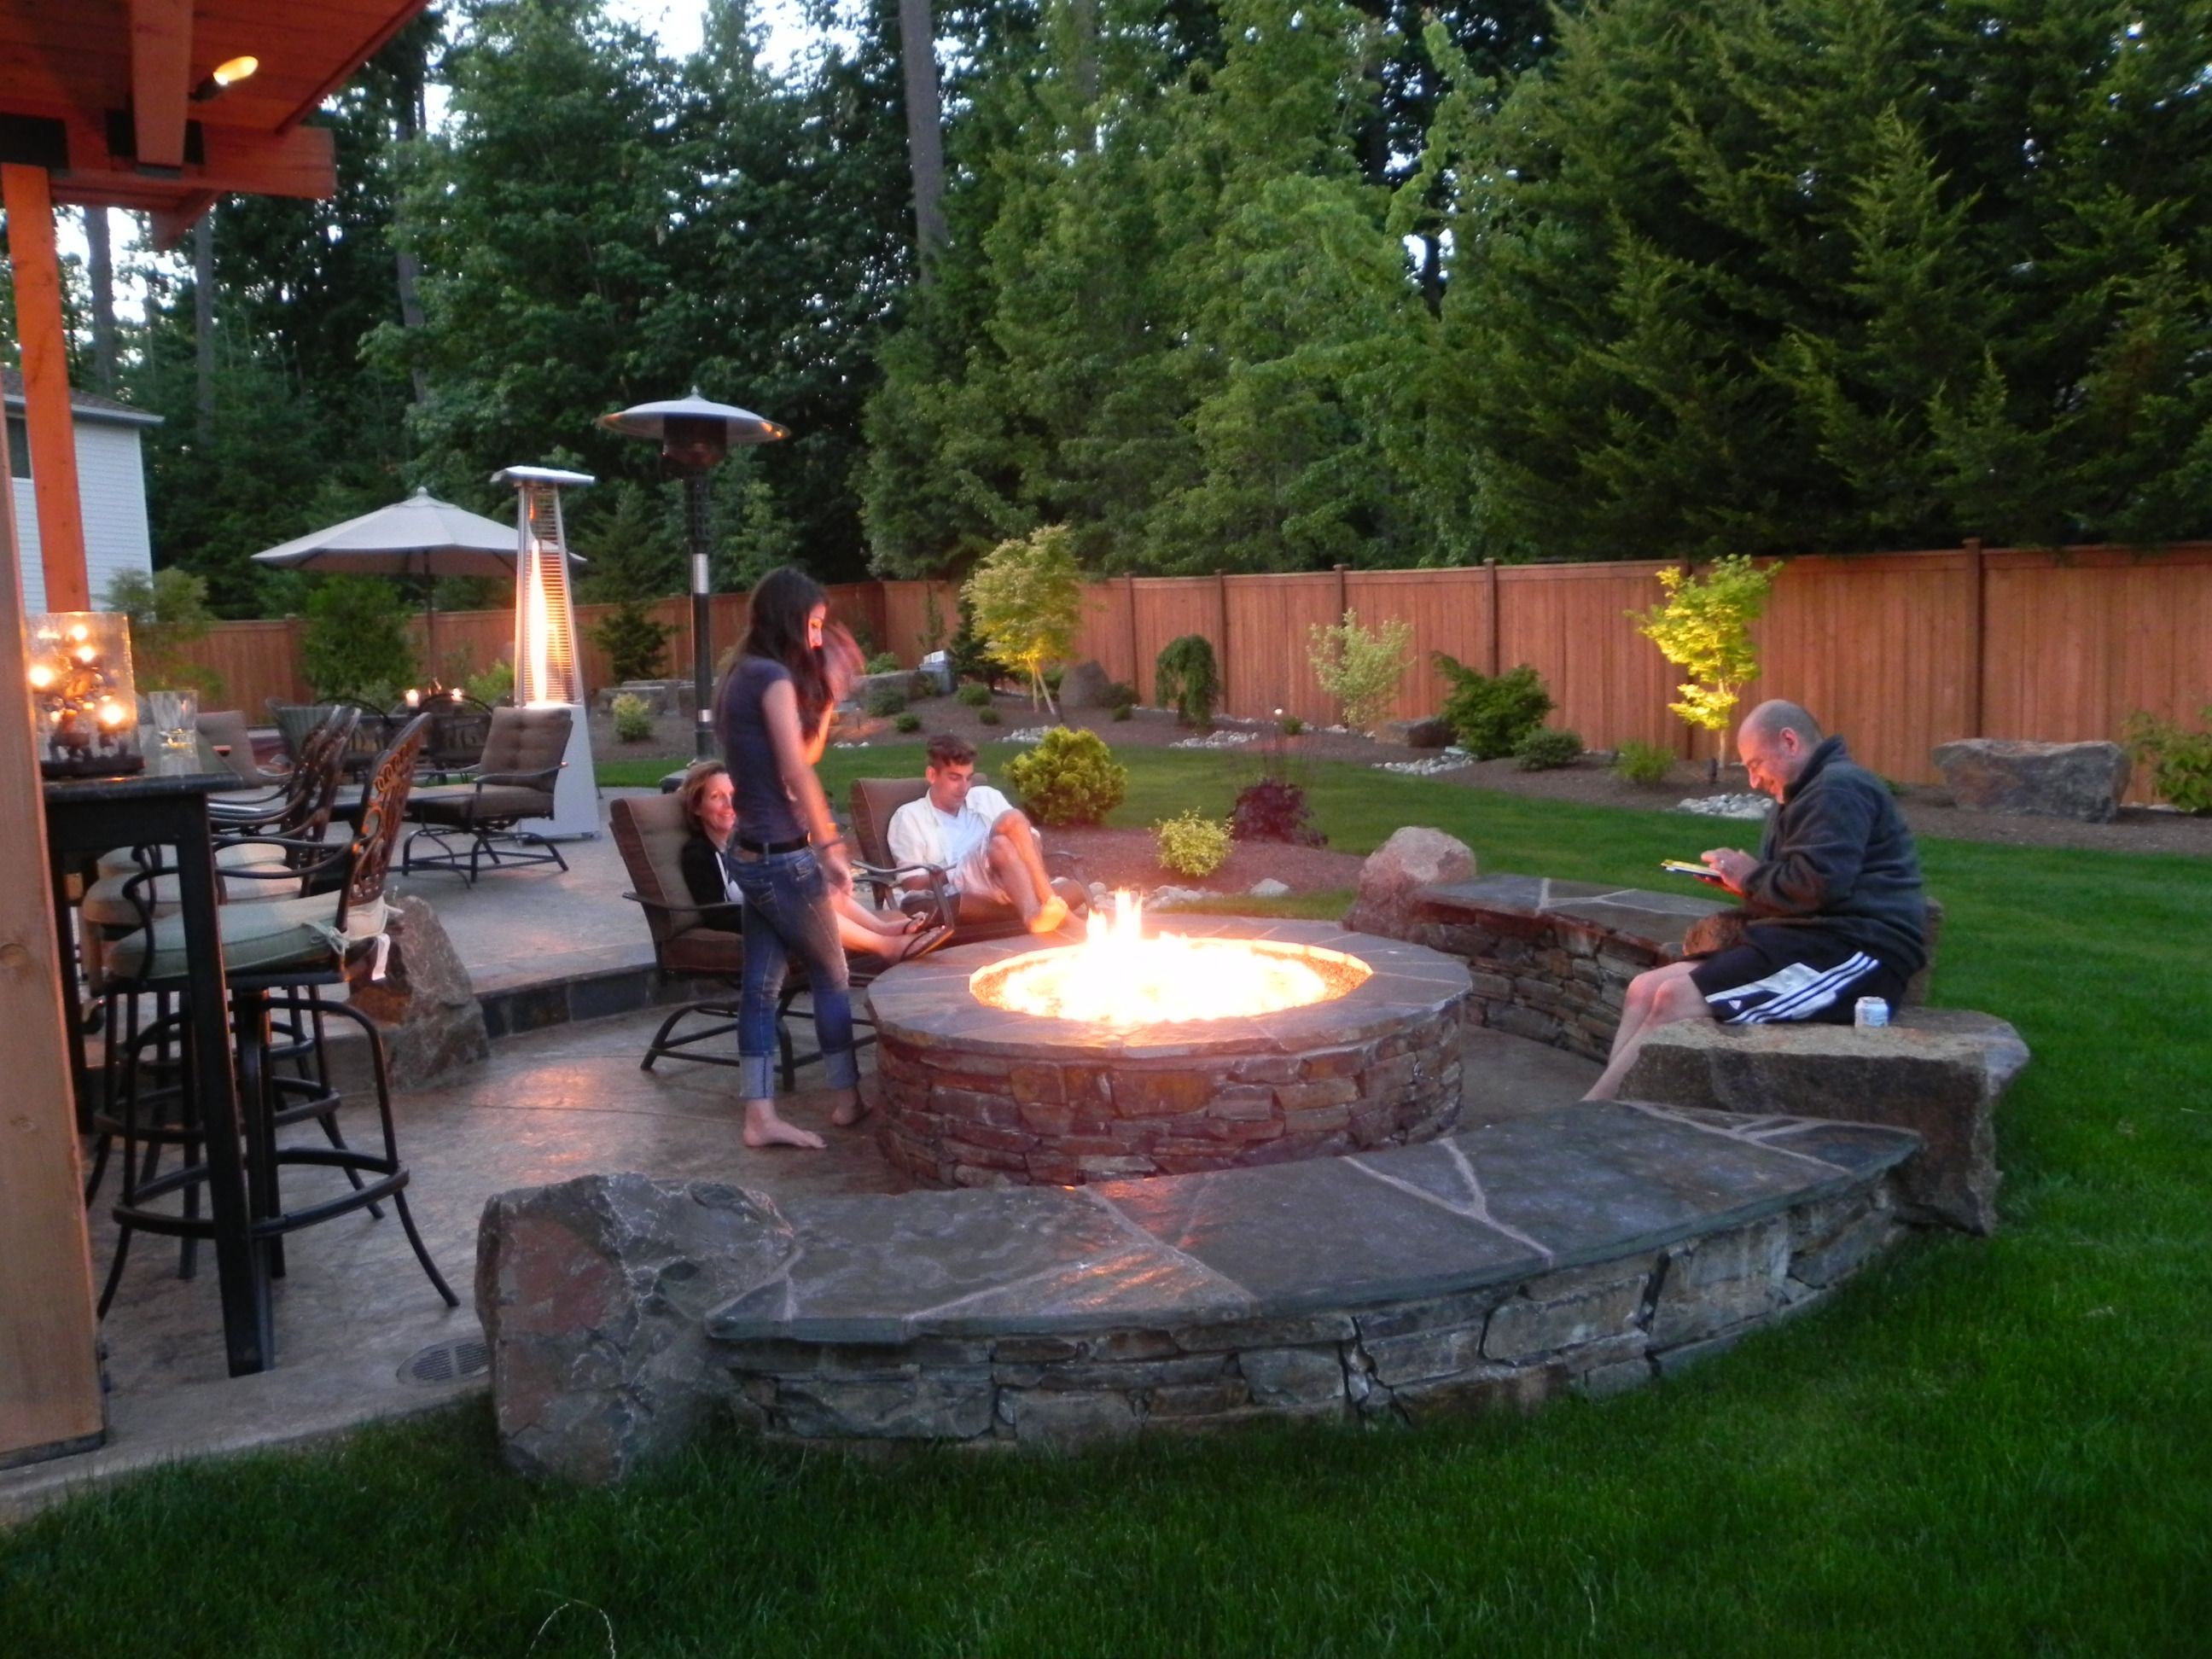 back yard 5 outstanding backyard fire pit ideas landscaping backyard landscape pictures - Patio Design Ideas With Fire Pits